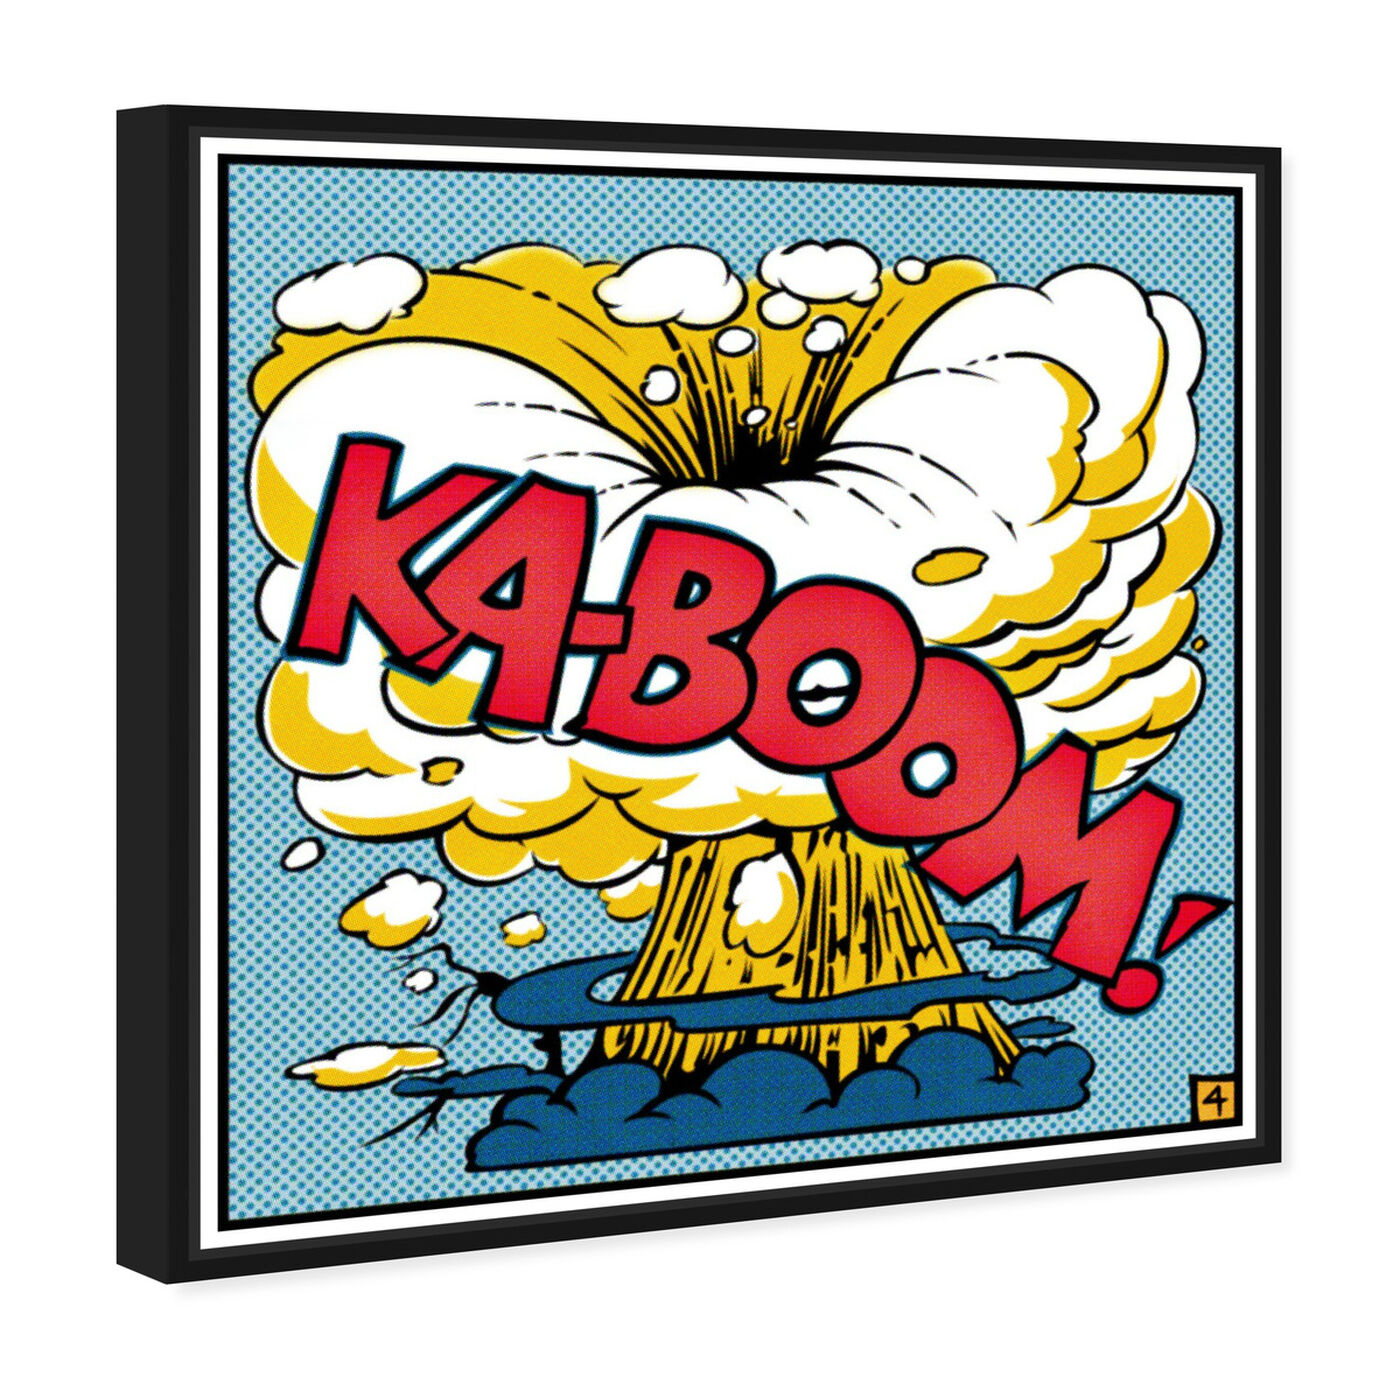 Angled view of Ka-Boom featuring advertising and comics art.